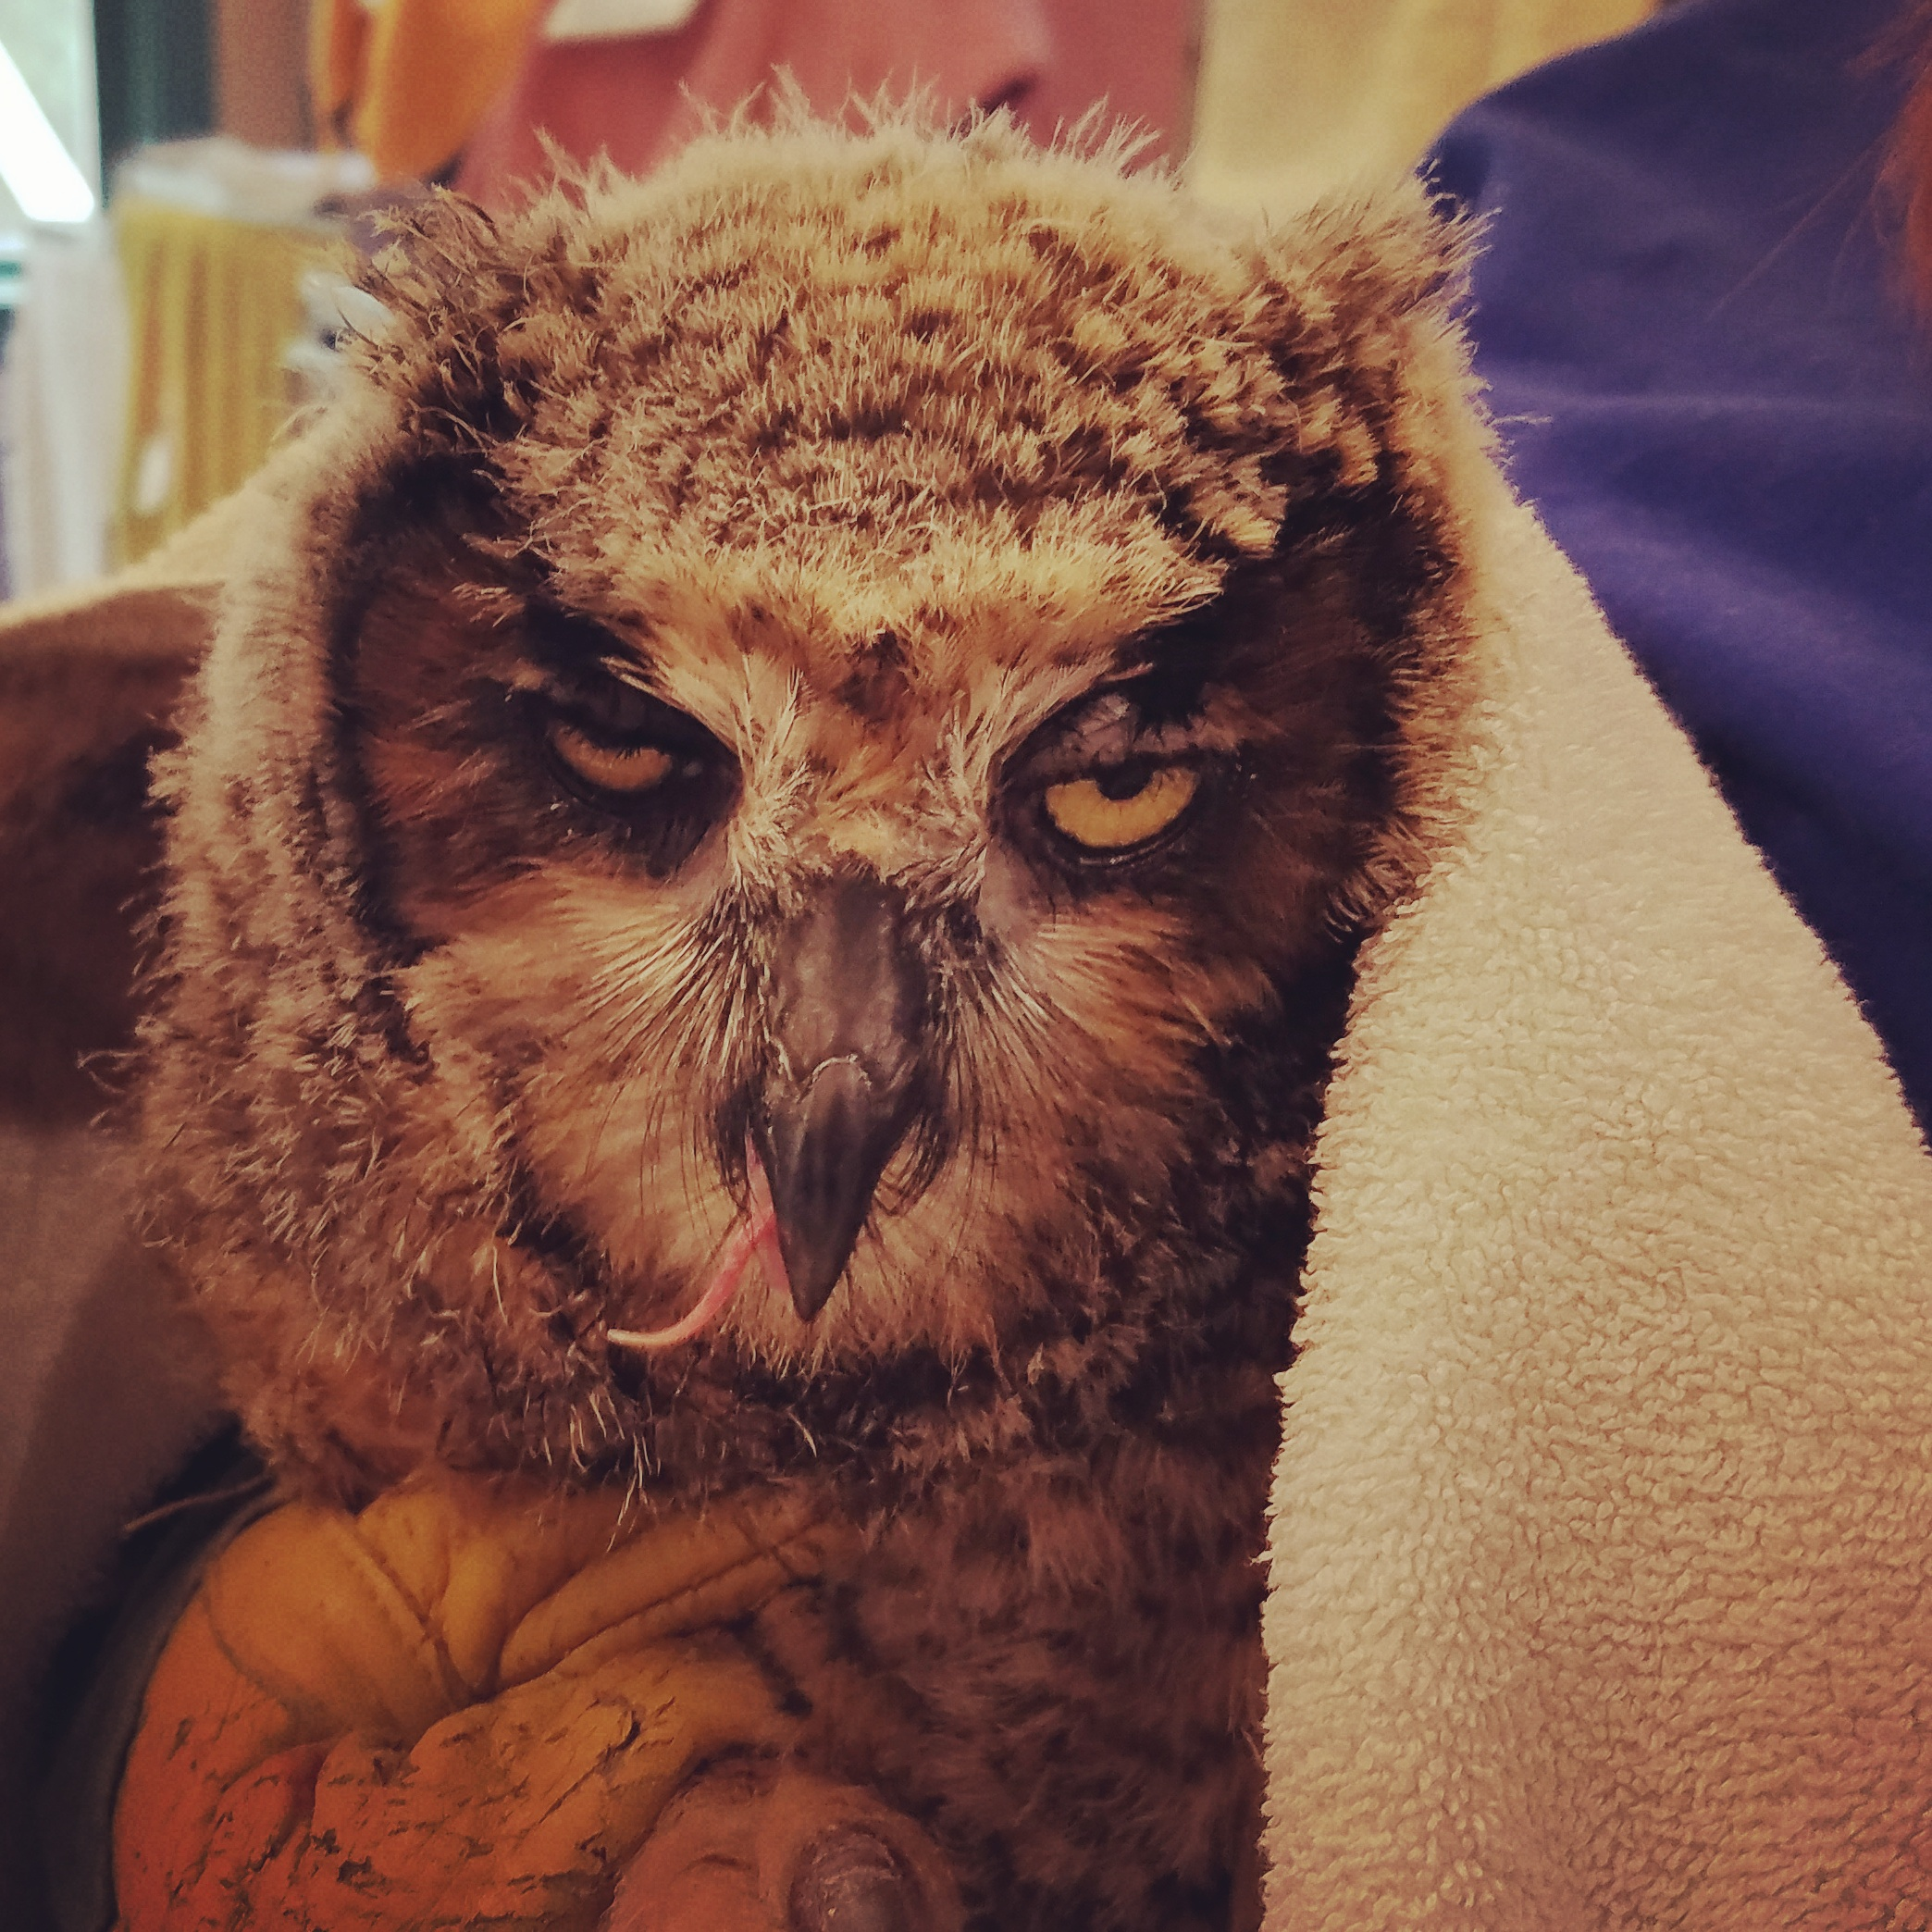 Great Horned Owlet Admitted to Hospital